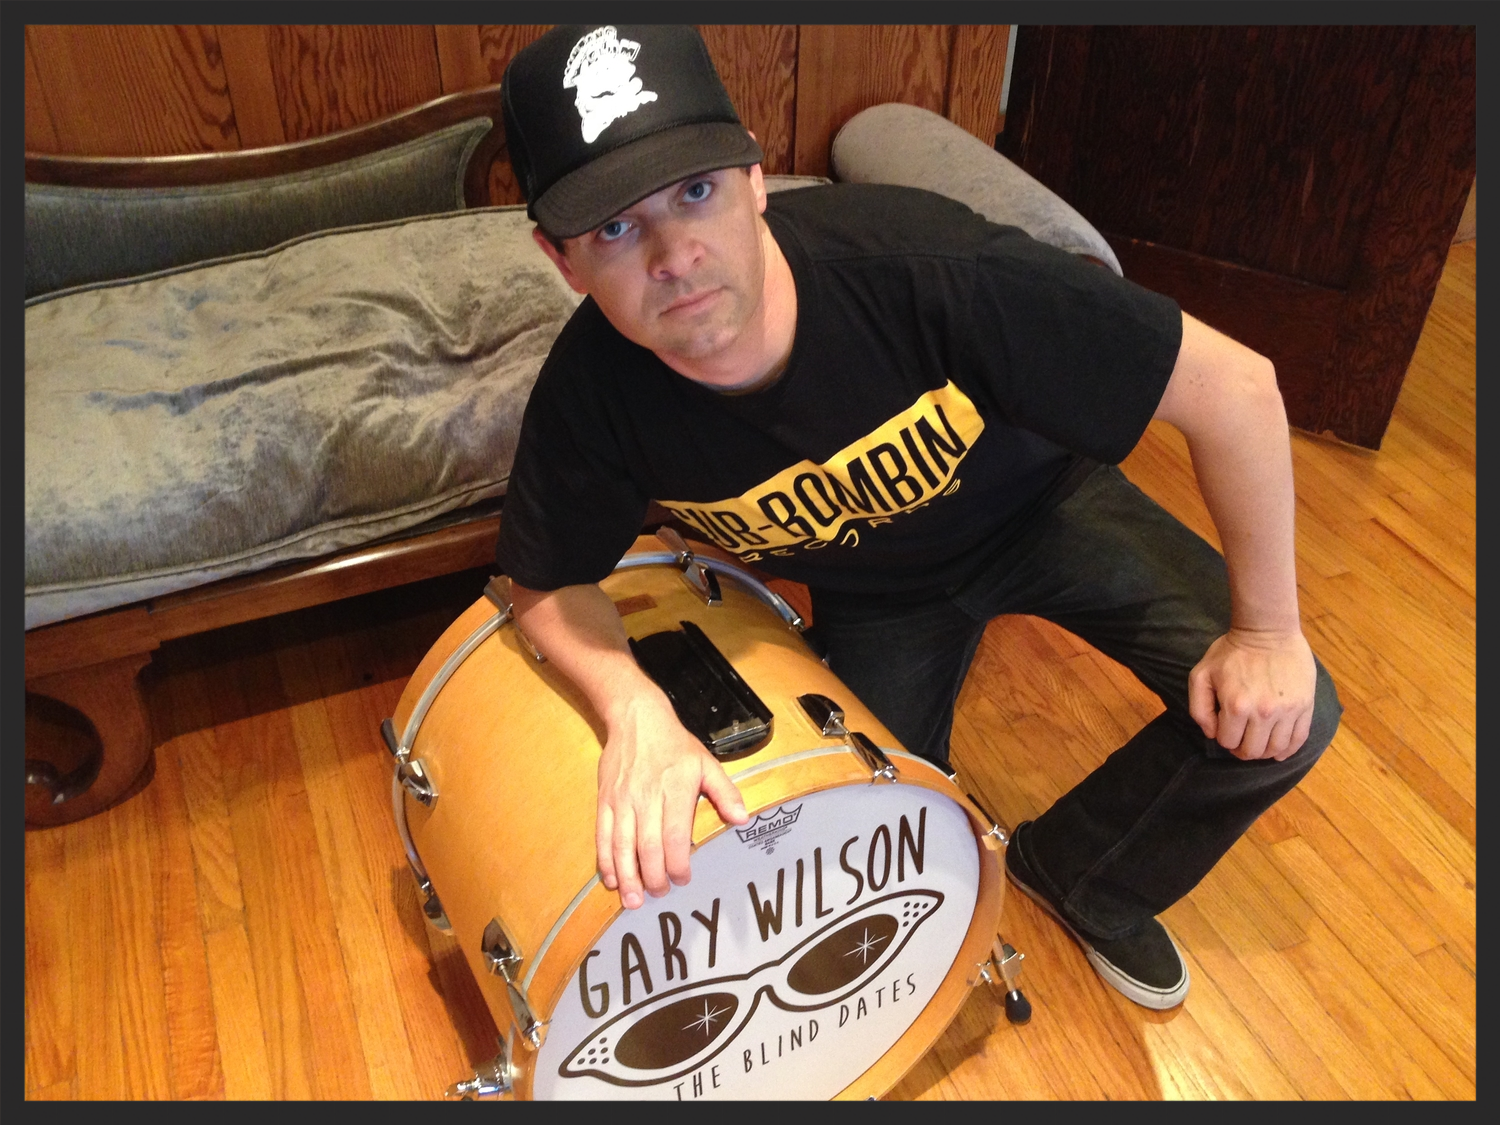 Ready to rock with my Poontang Clam hat, Sub-Bombin t-shirt, and Gary Wilson drum!